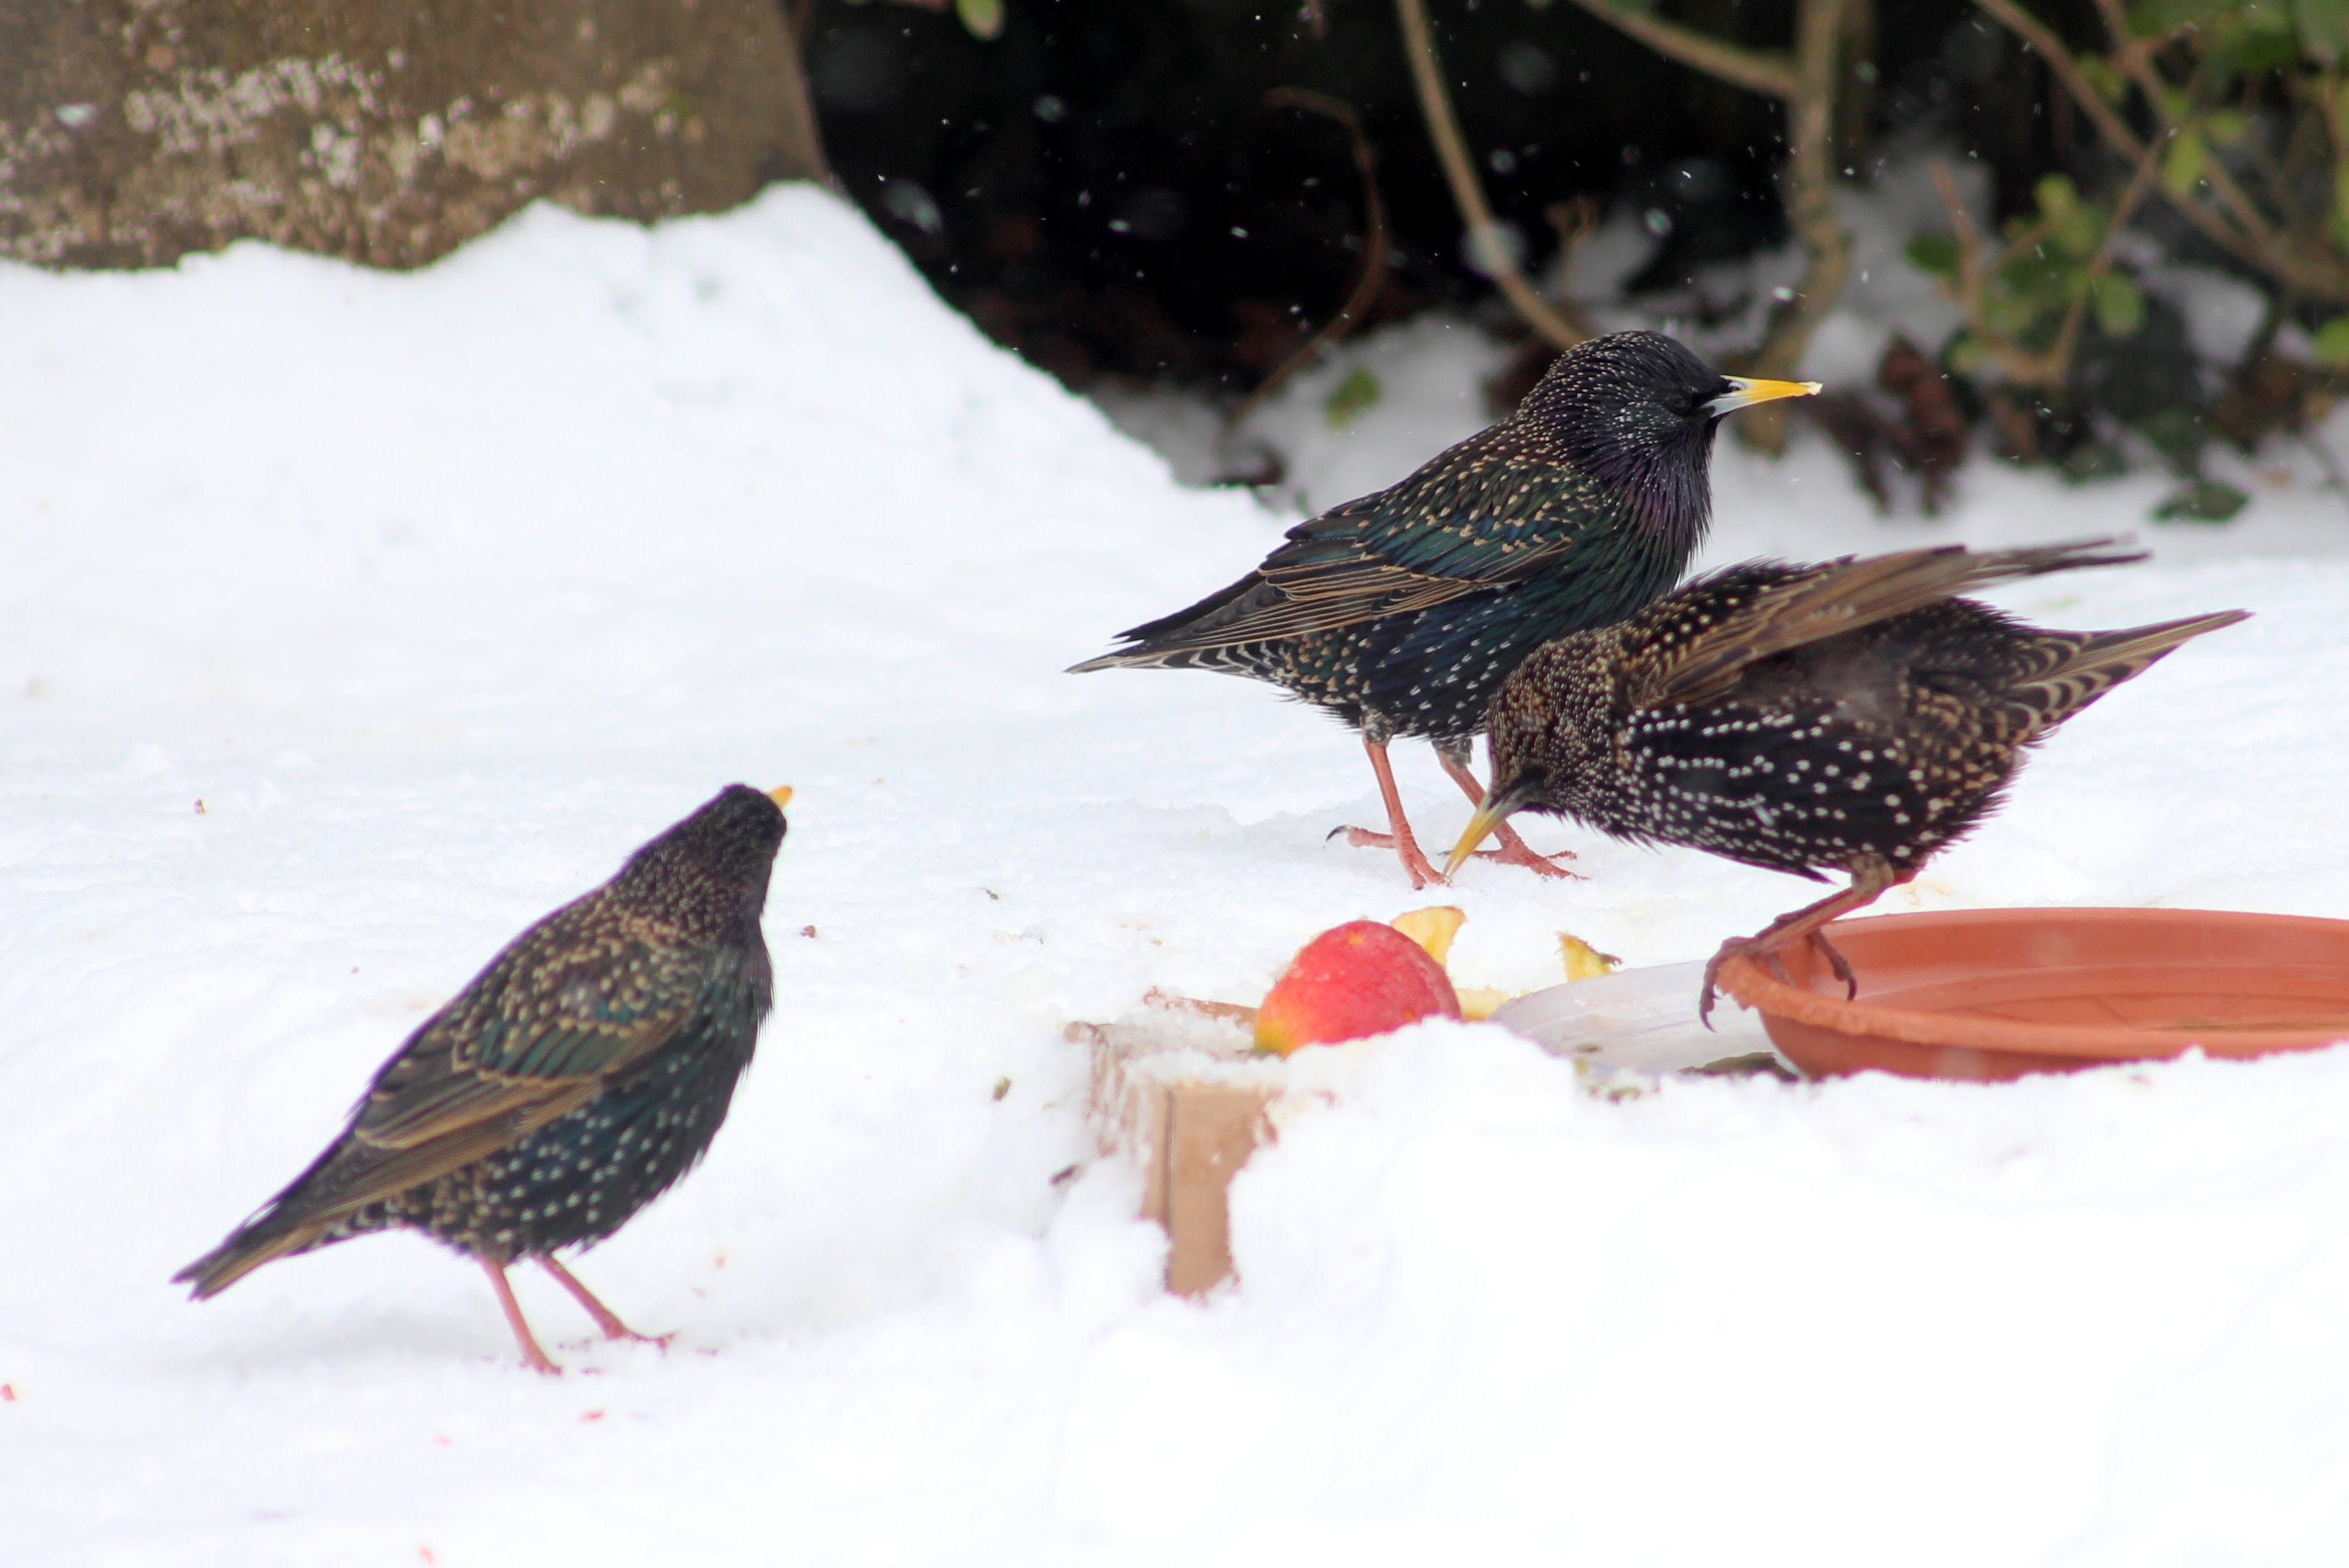 Three Birds on the Ground Surrounded by Snow